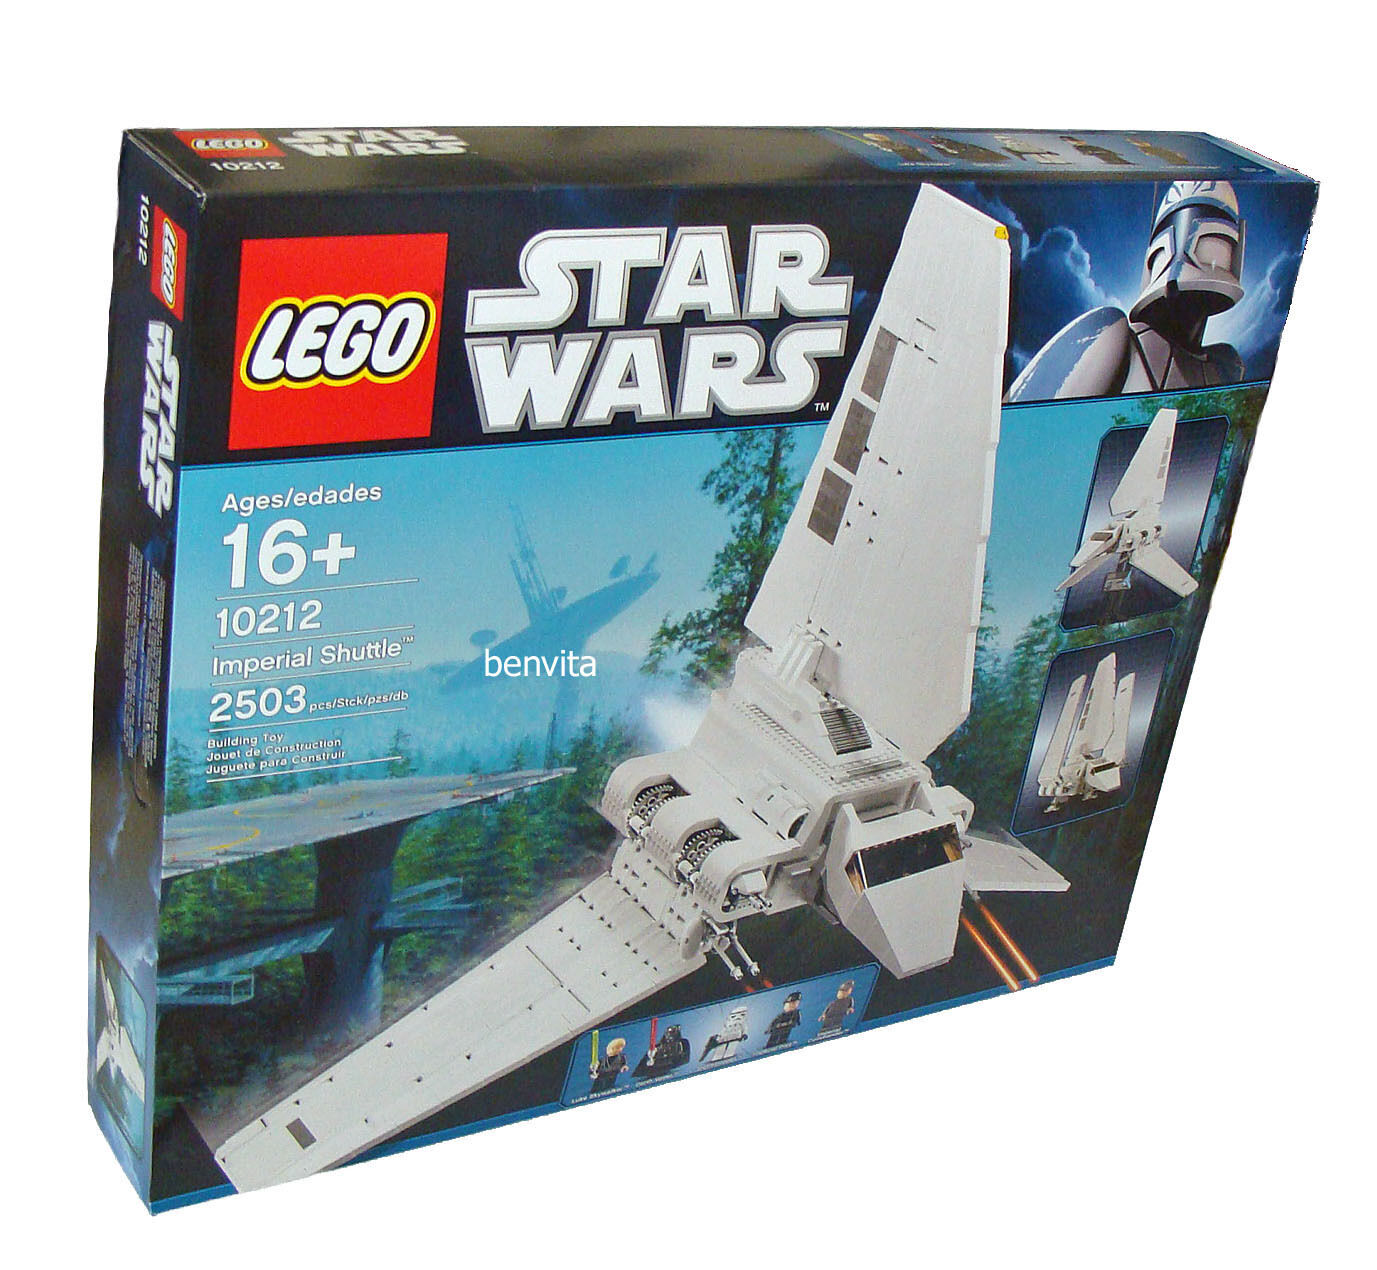 LEGO ® Star Wars 10212-Imperial Shuttle 2503 parti 16+ - NUOVO